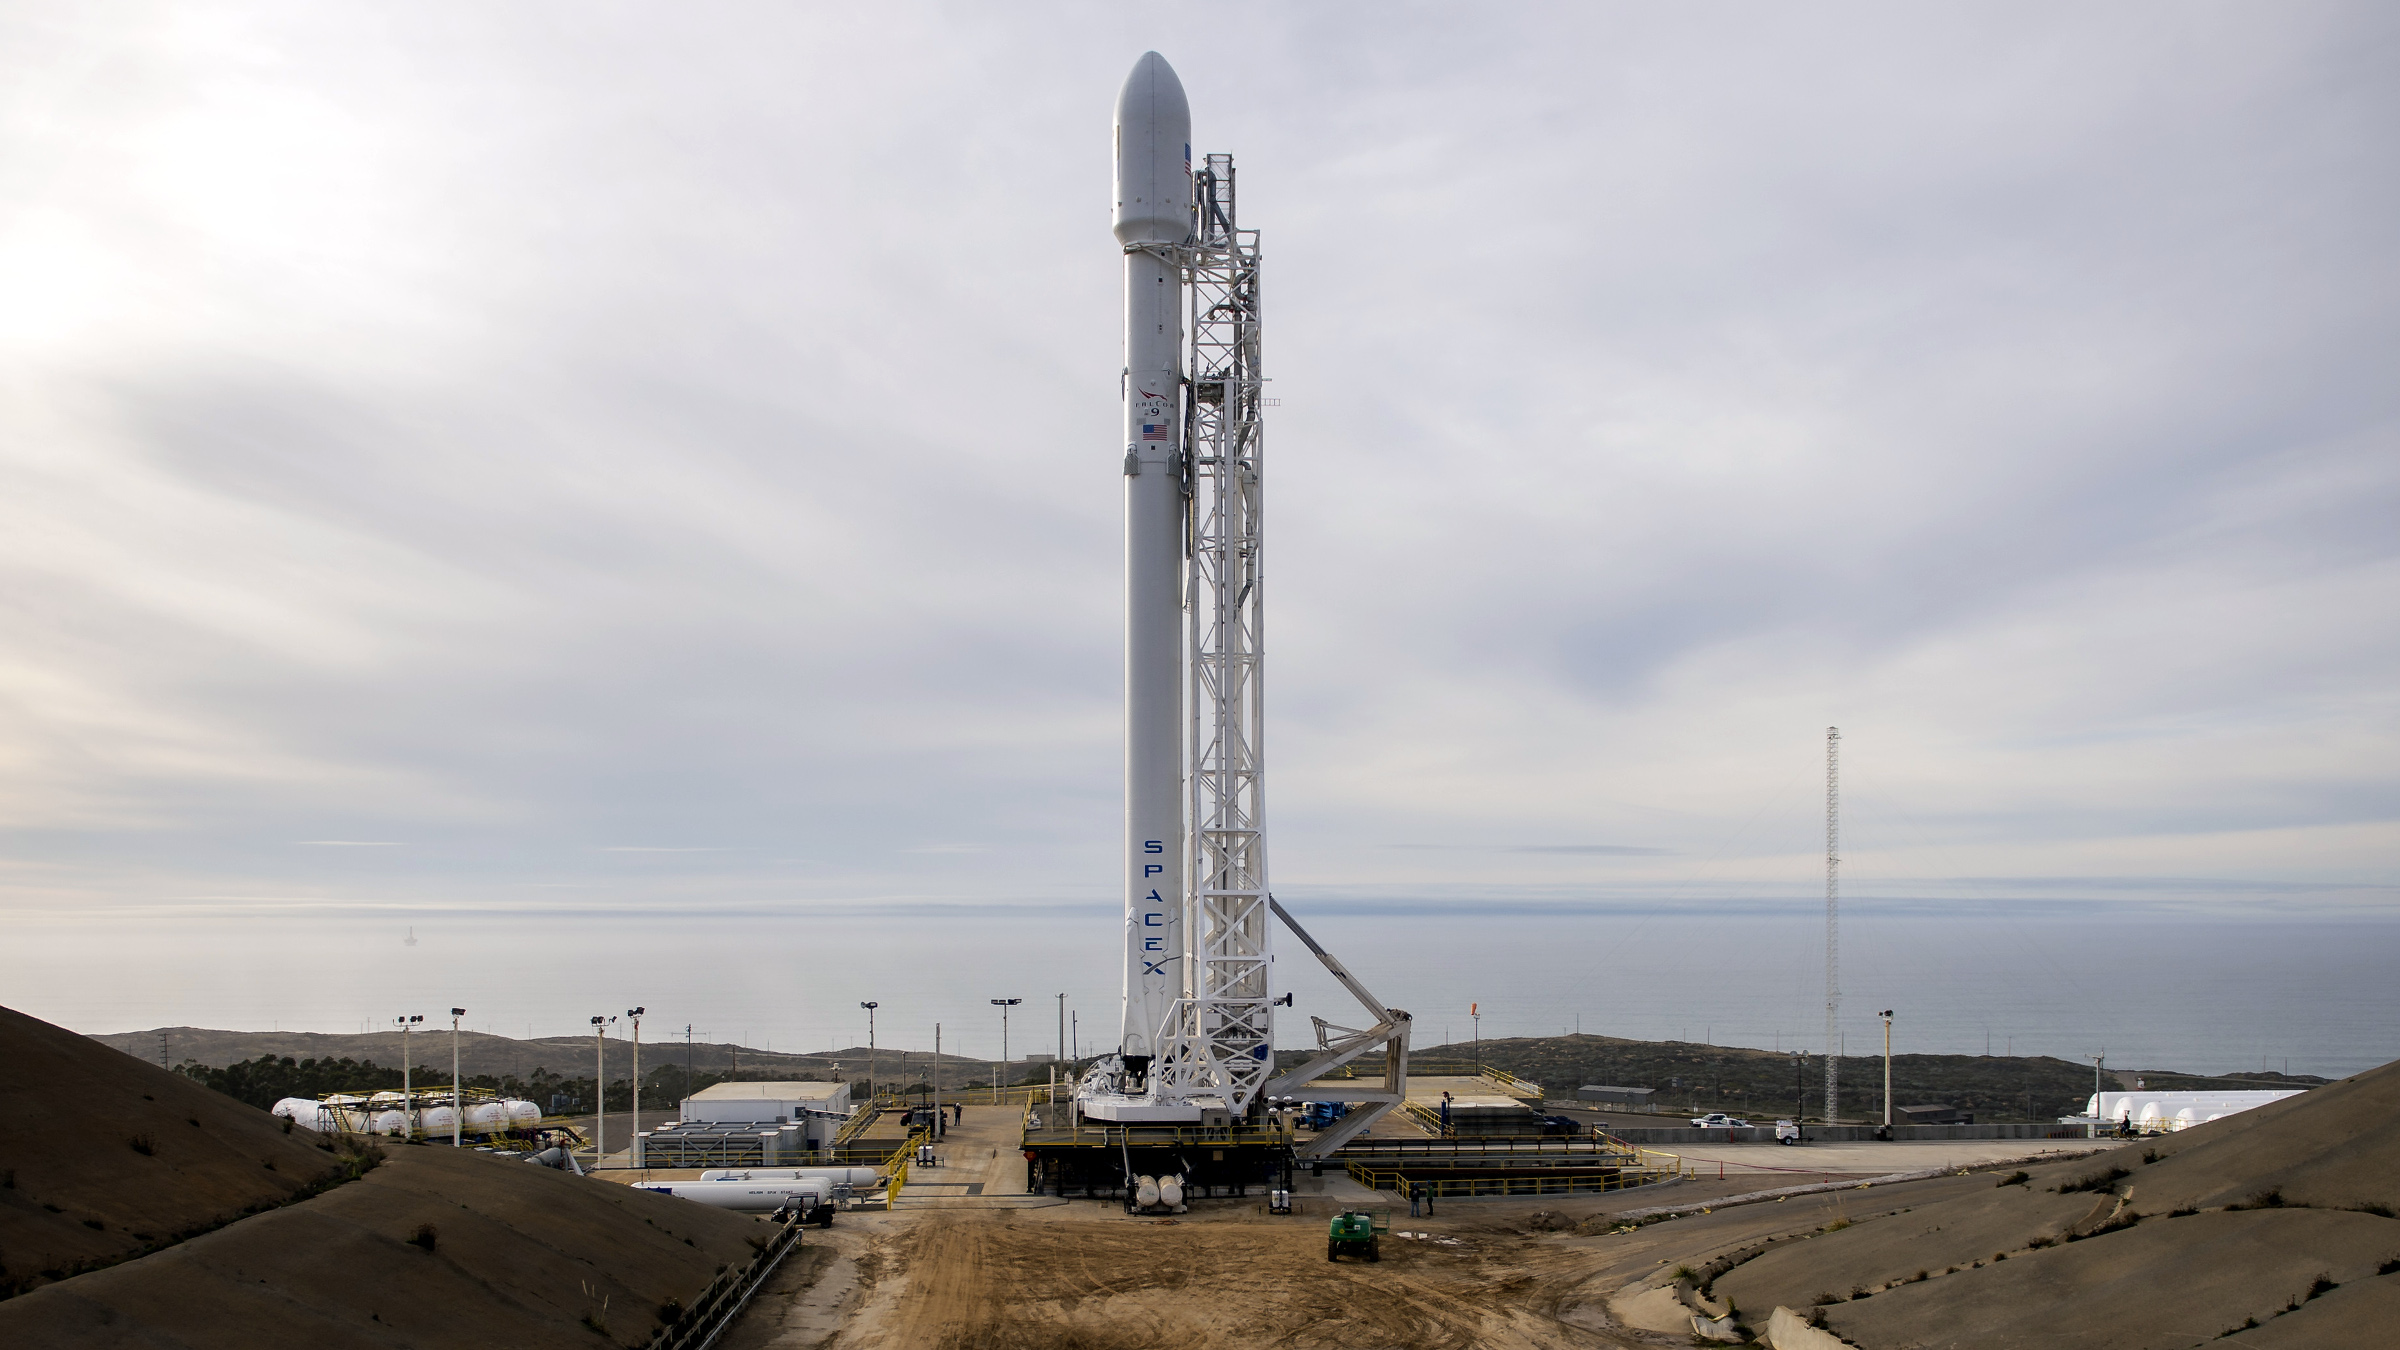 The SpaceX Falcon 9 rocket is seen at Vandenberg Air Force Base Space Launch Complex 4 East with the Jason-3 spacecraft onboard, Saturday, Jan. 16, 2016, in California. Jason-3, an international mission led by the National Oceanic and Atmospheric Administration (NOAA), will help continue U.S.-European satellite measurements of global ocean height changes.